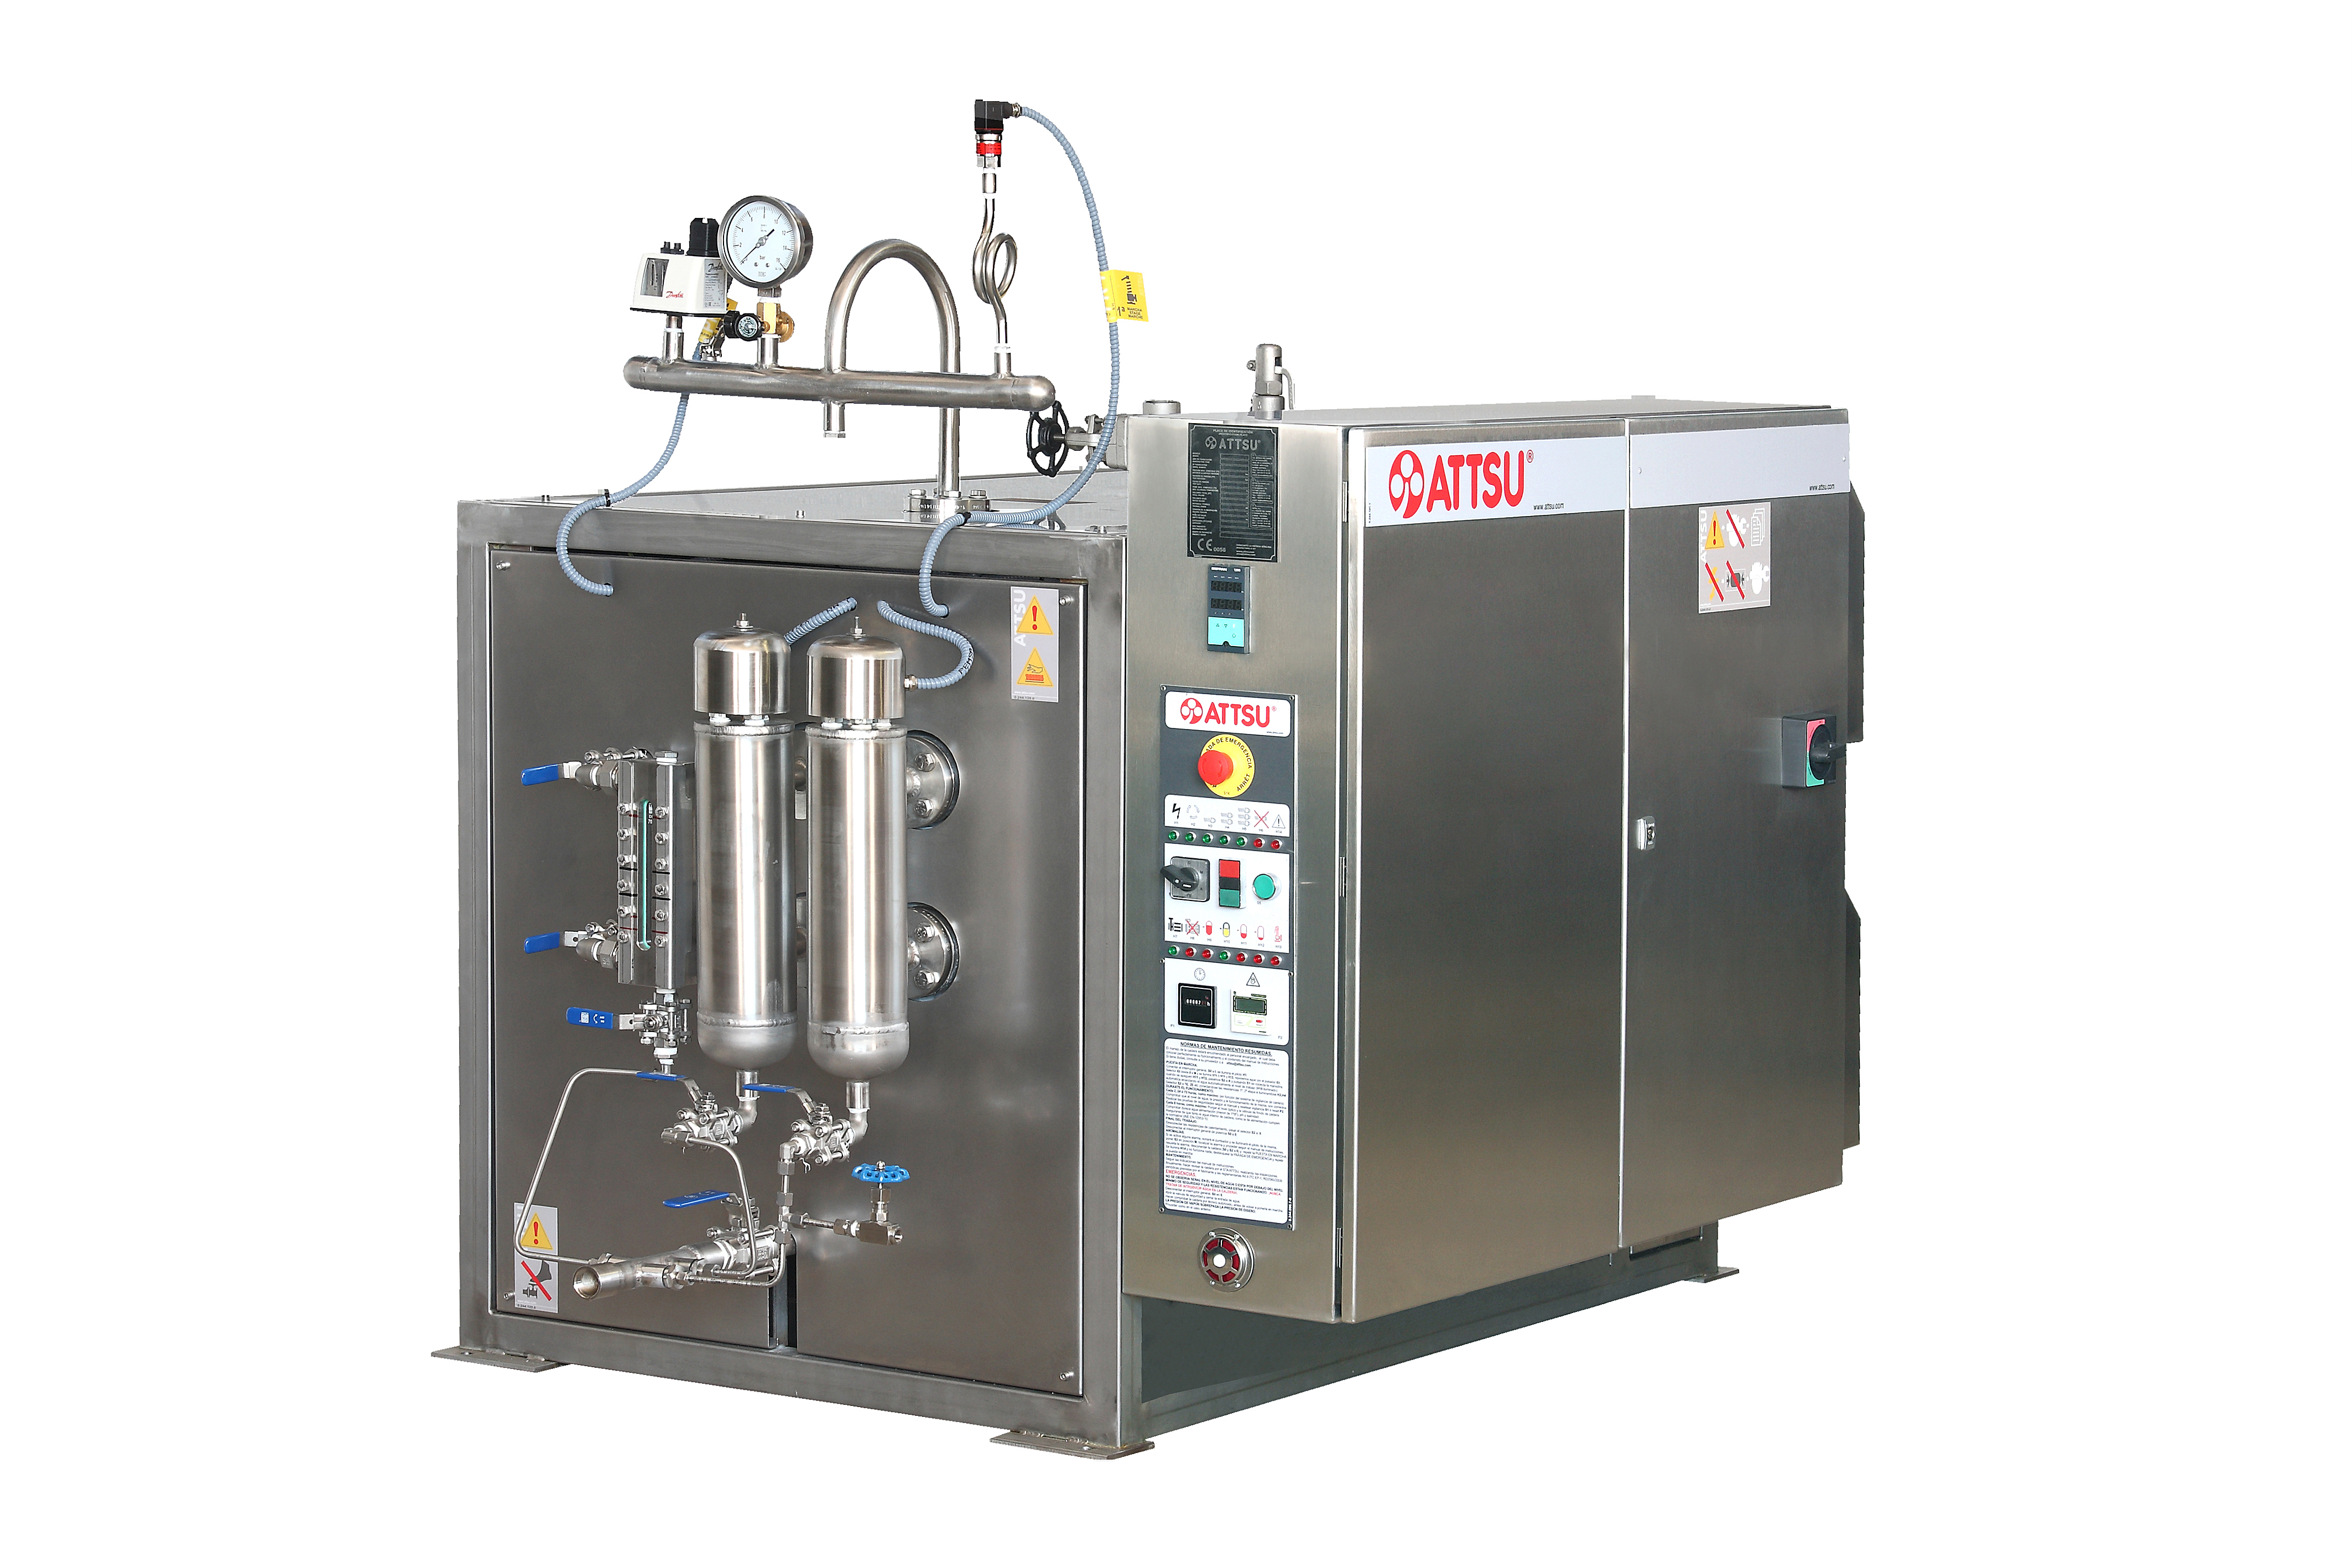 Electric Steam Boiler ~ Attsu gei inox electric steam boiler made of stainless